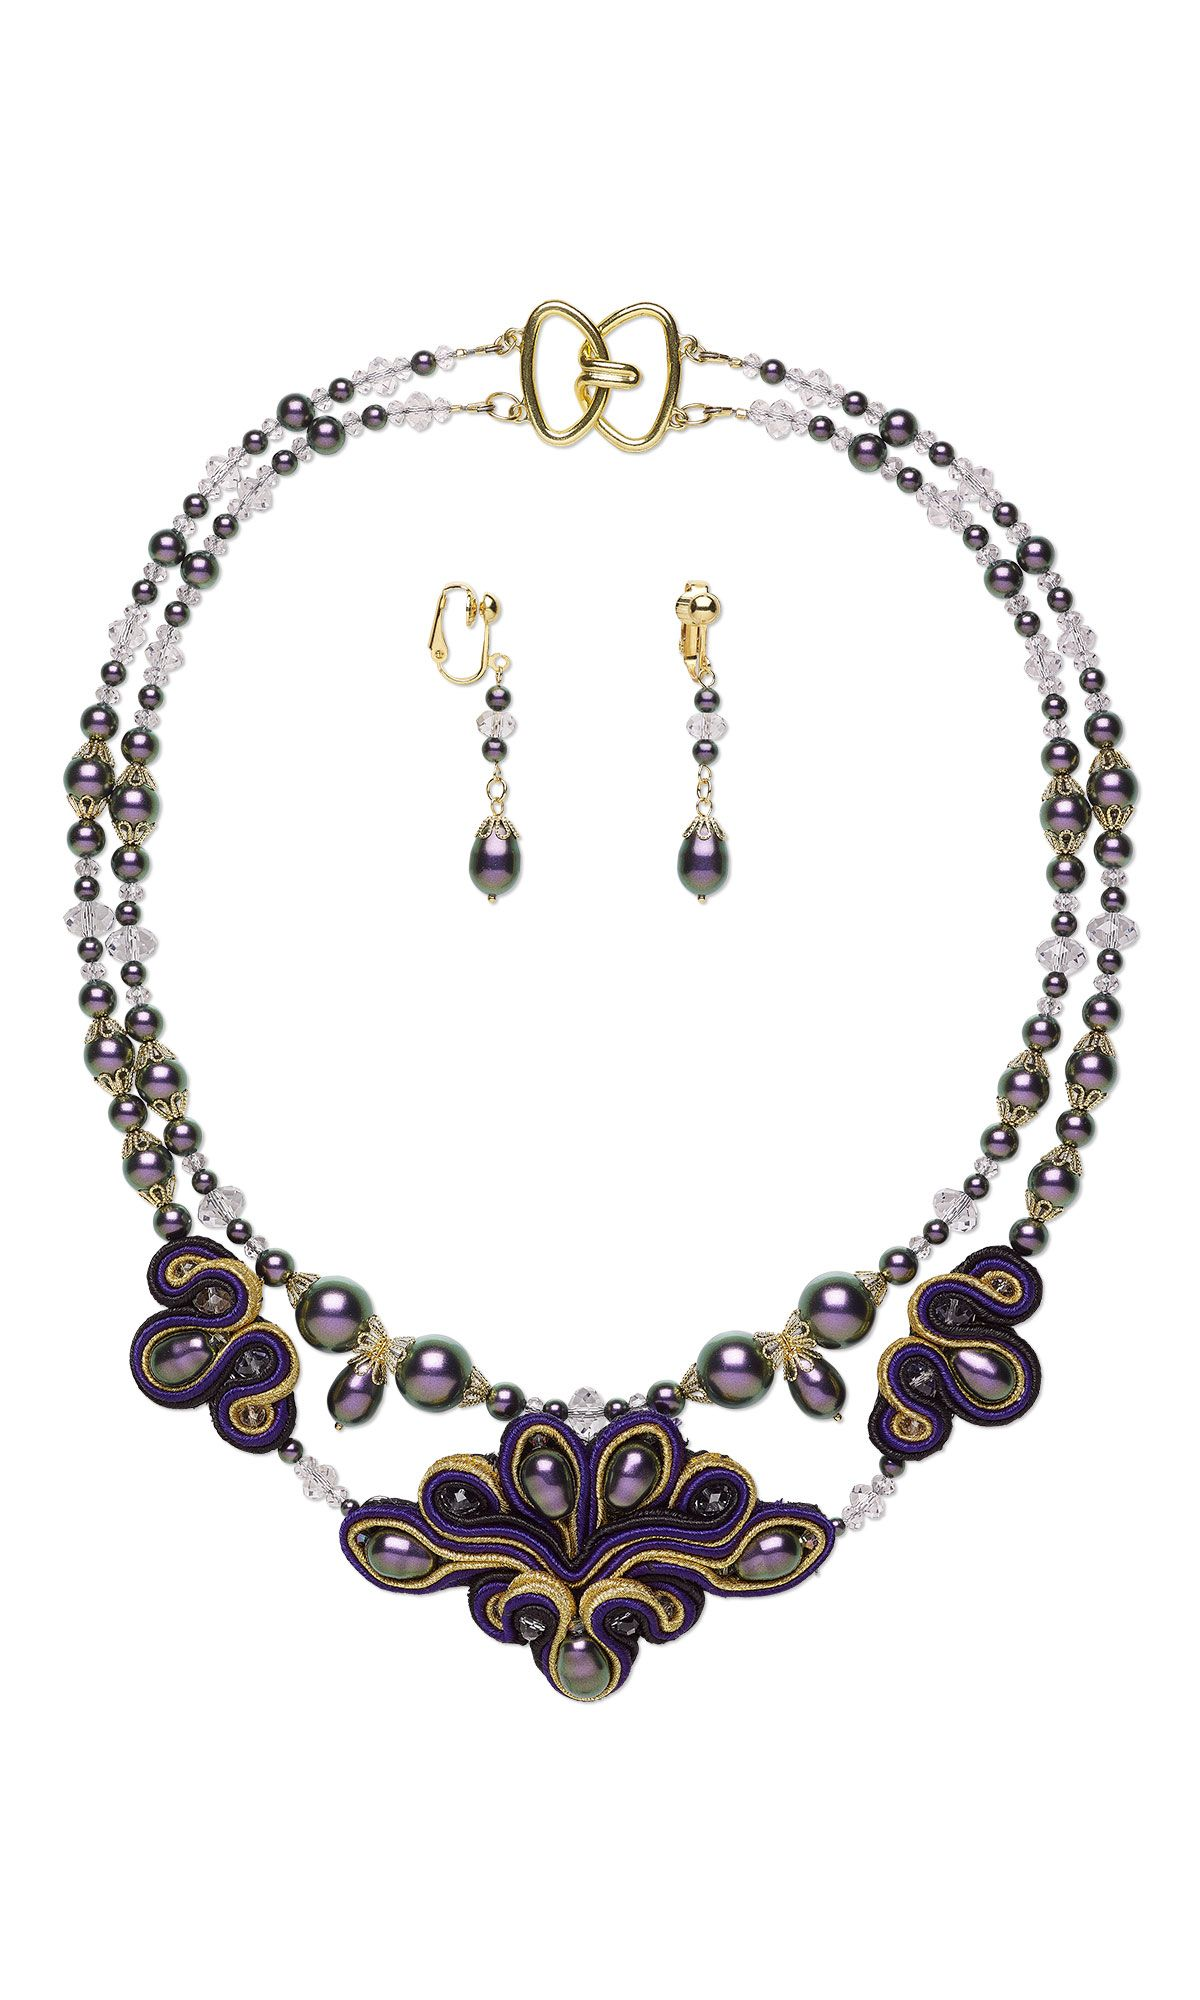 Jewelry Design - Double-Strand Necklace and Earring Set with Swarovski Crystal, Polyester Soutache Cord and Gold-Plated Brass Bead Caps - Fire Mountain Gems and Beads